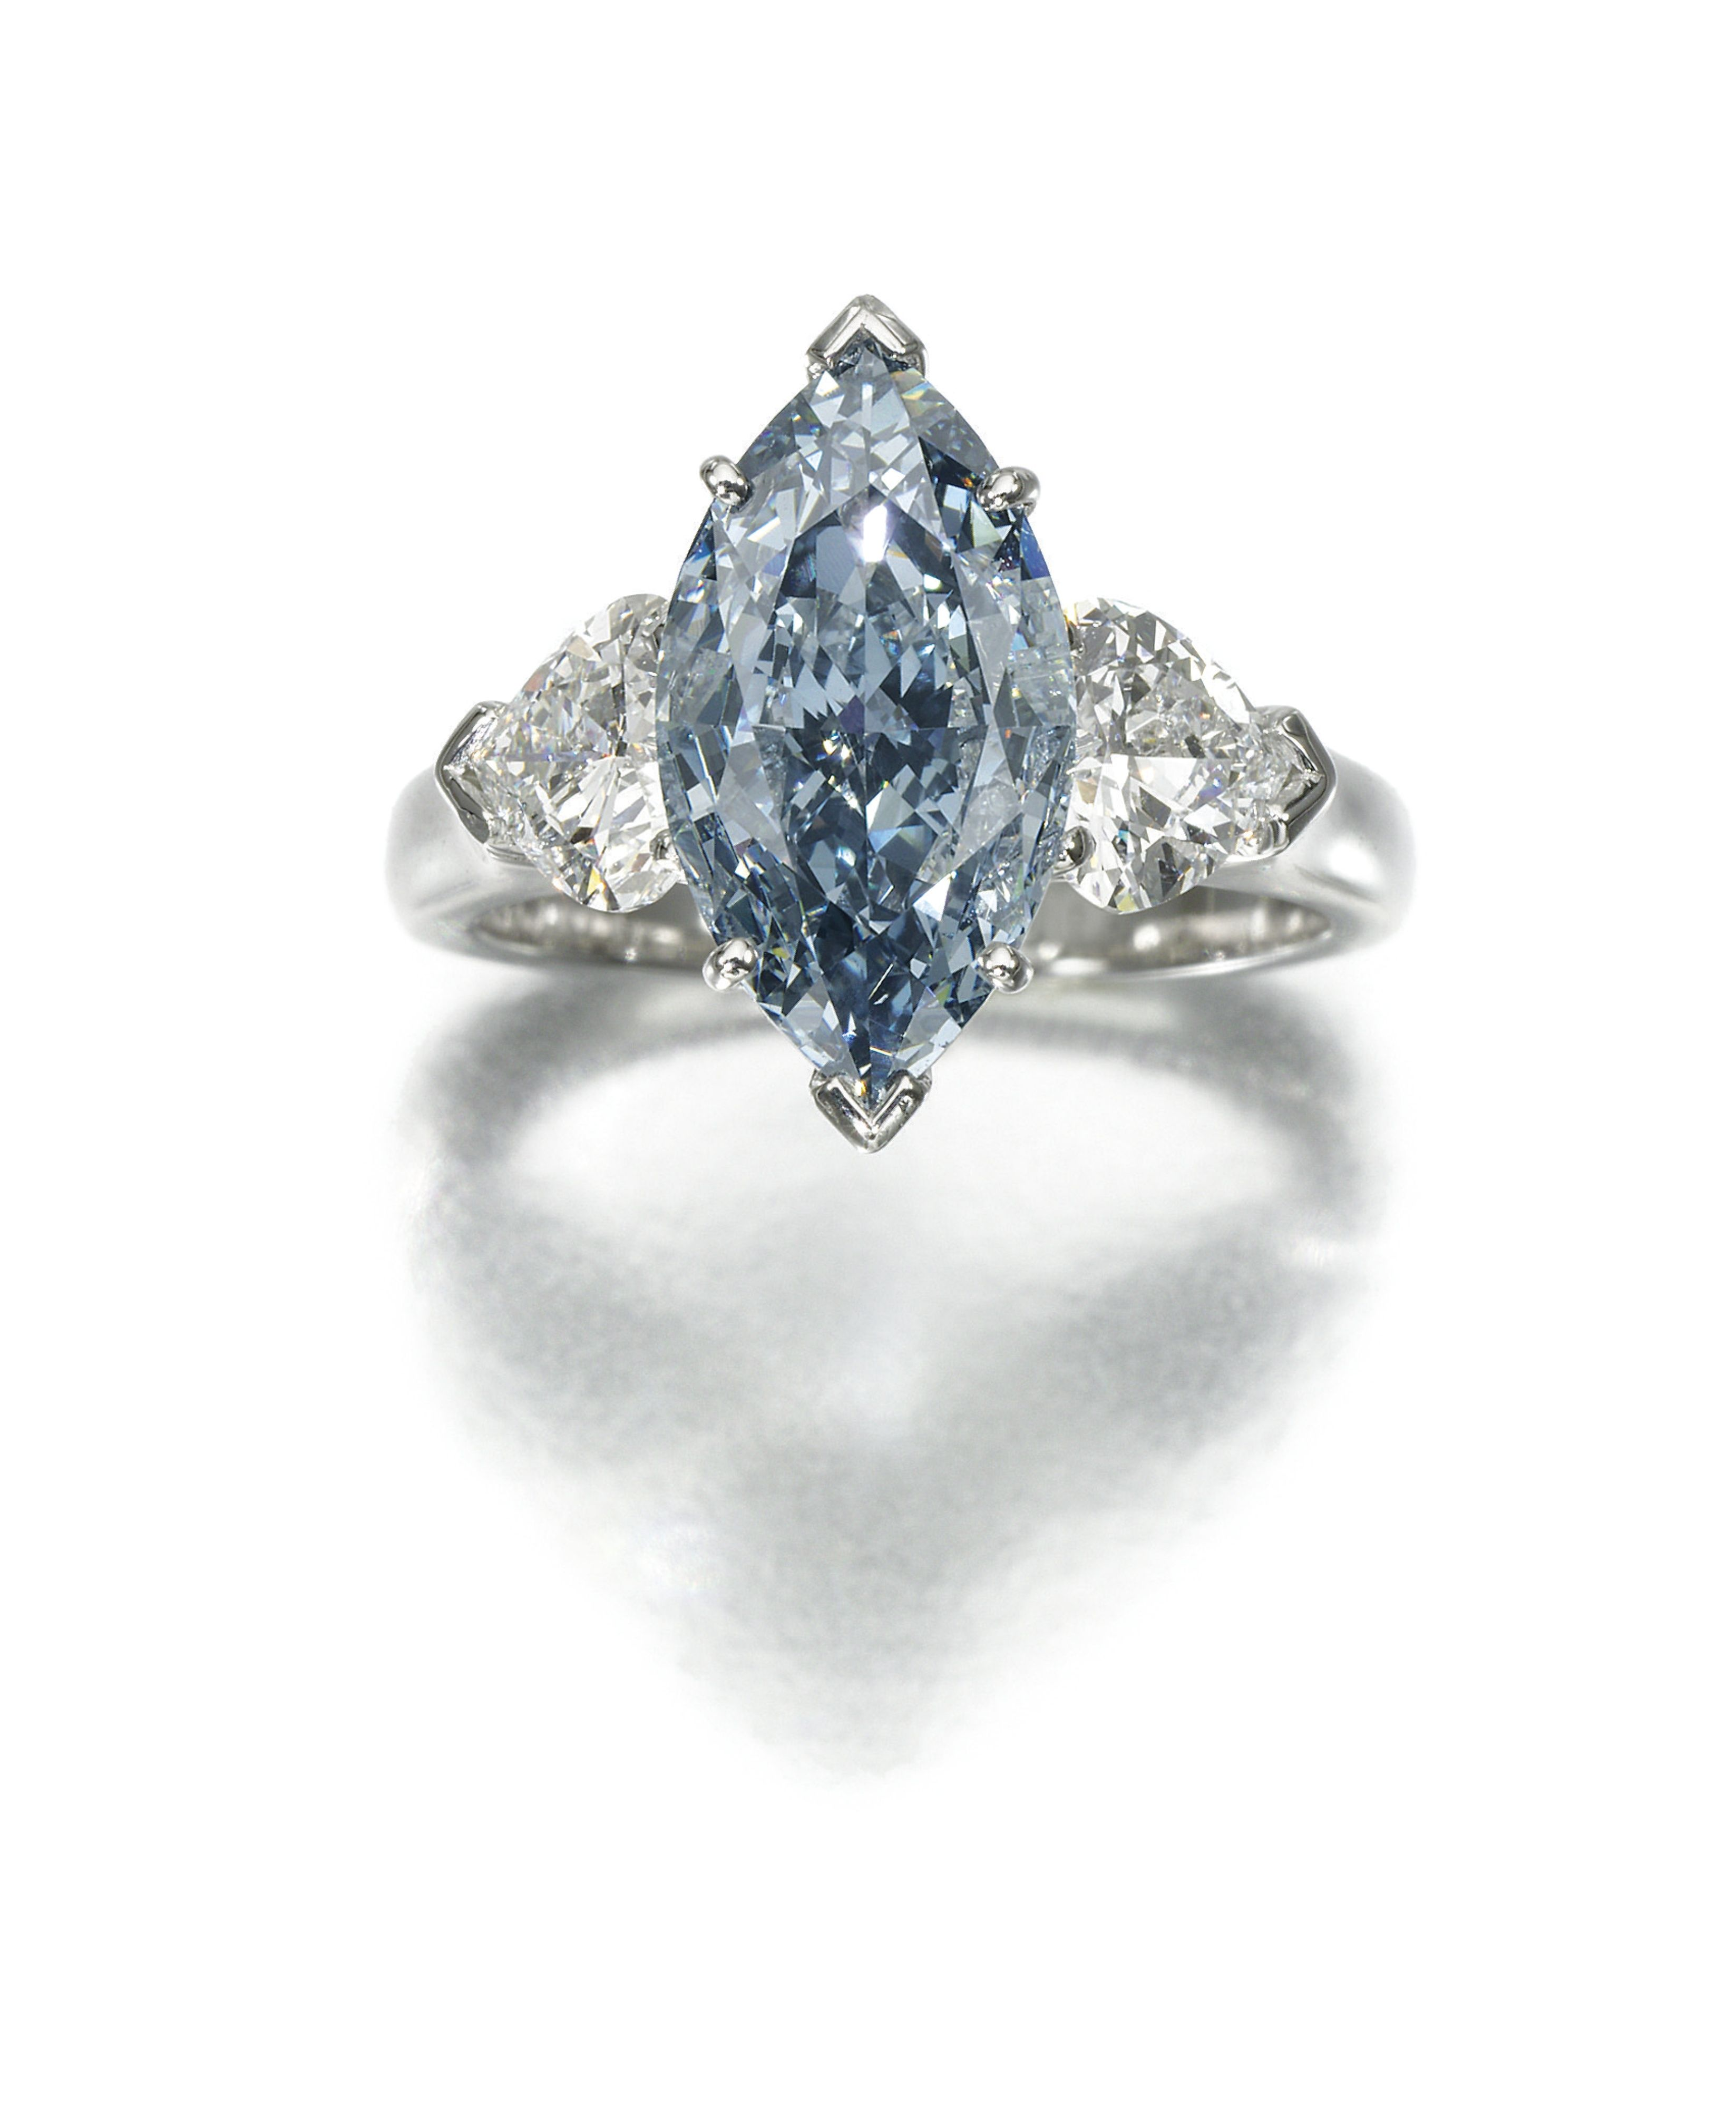 VERY ATTRACTIVE FANCY DEEP BLUE DIAMOND AND DIAMOND RING GRAFF